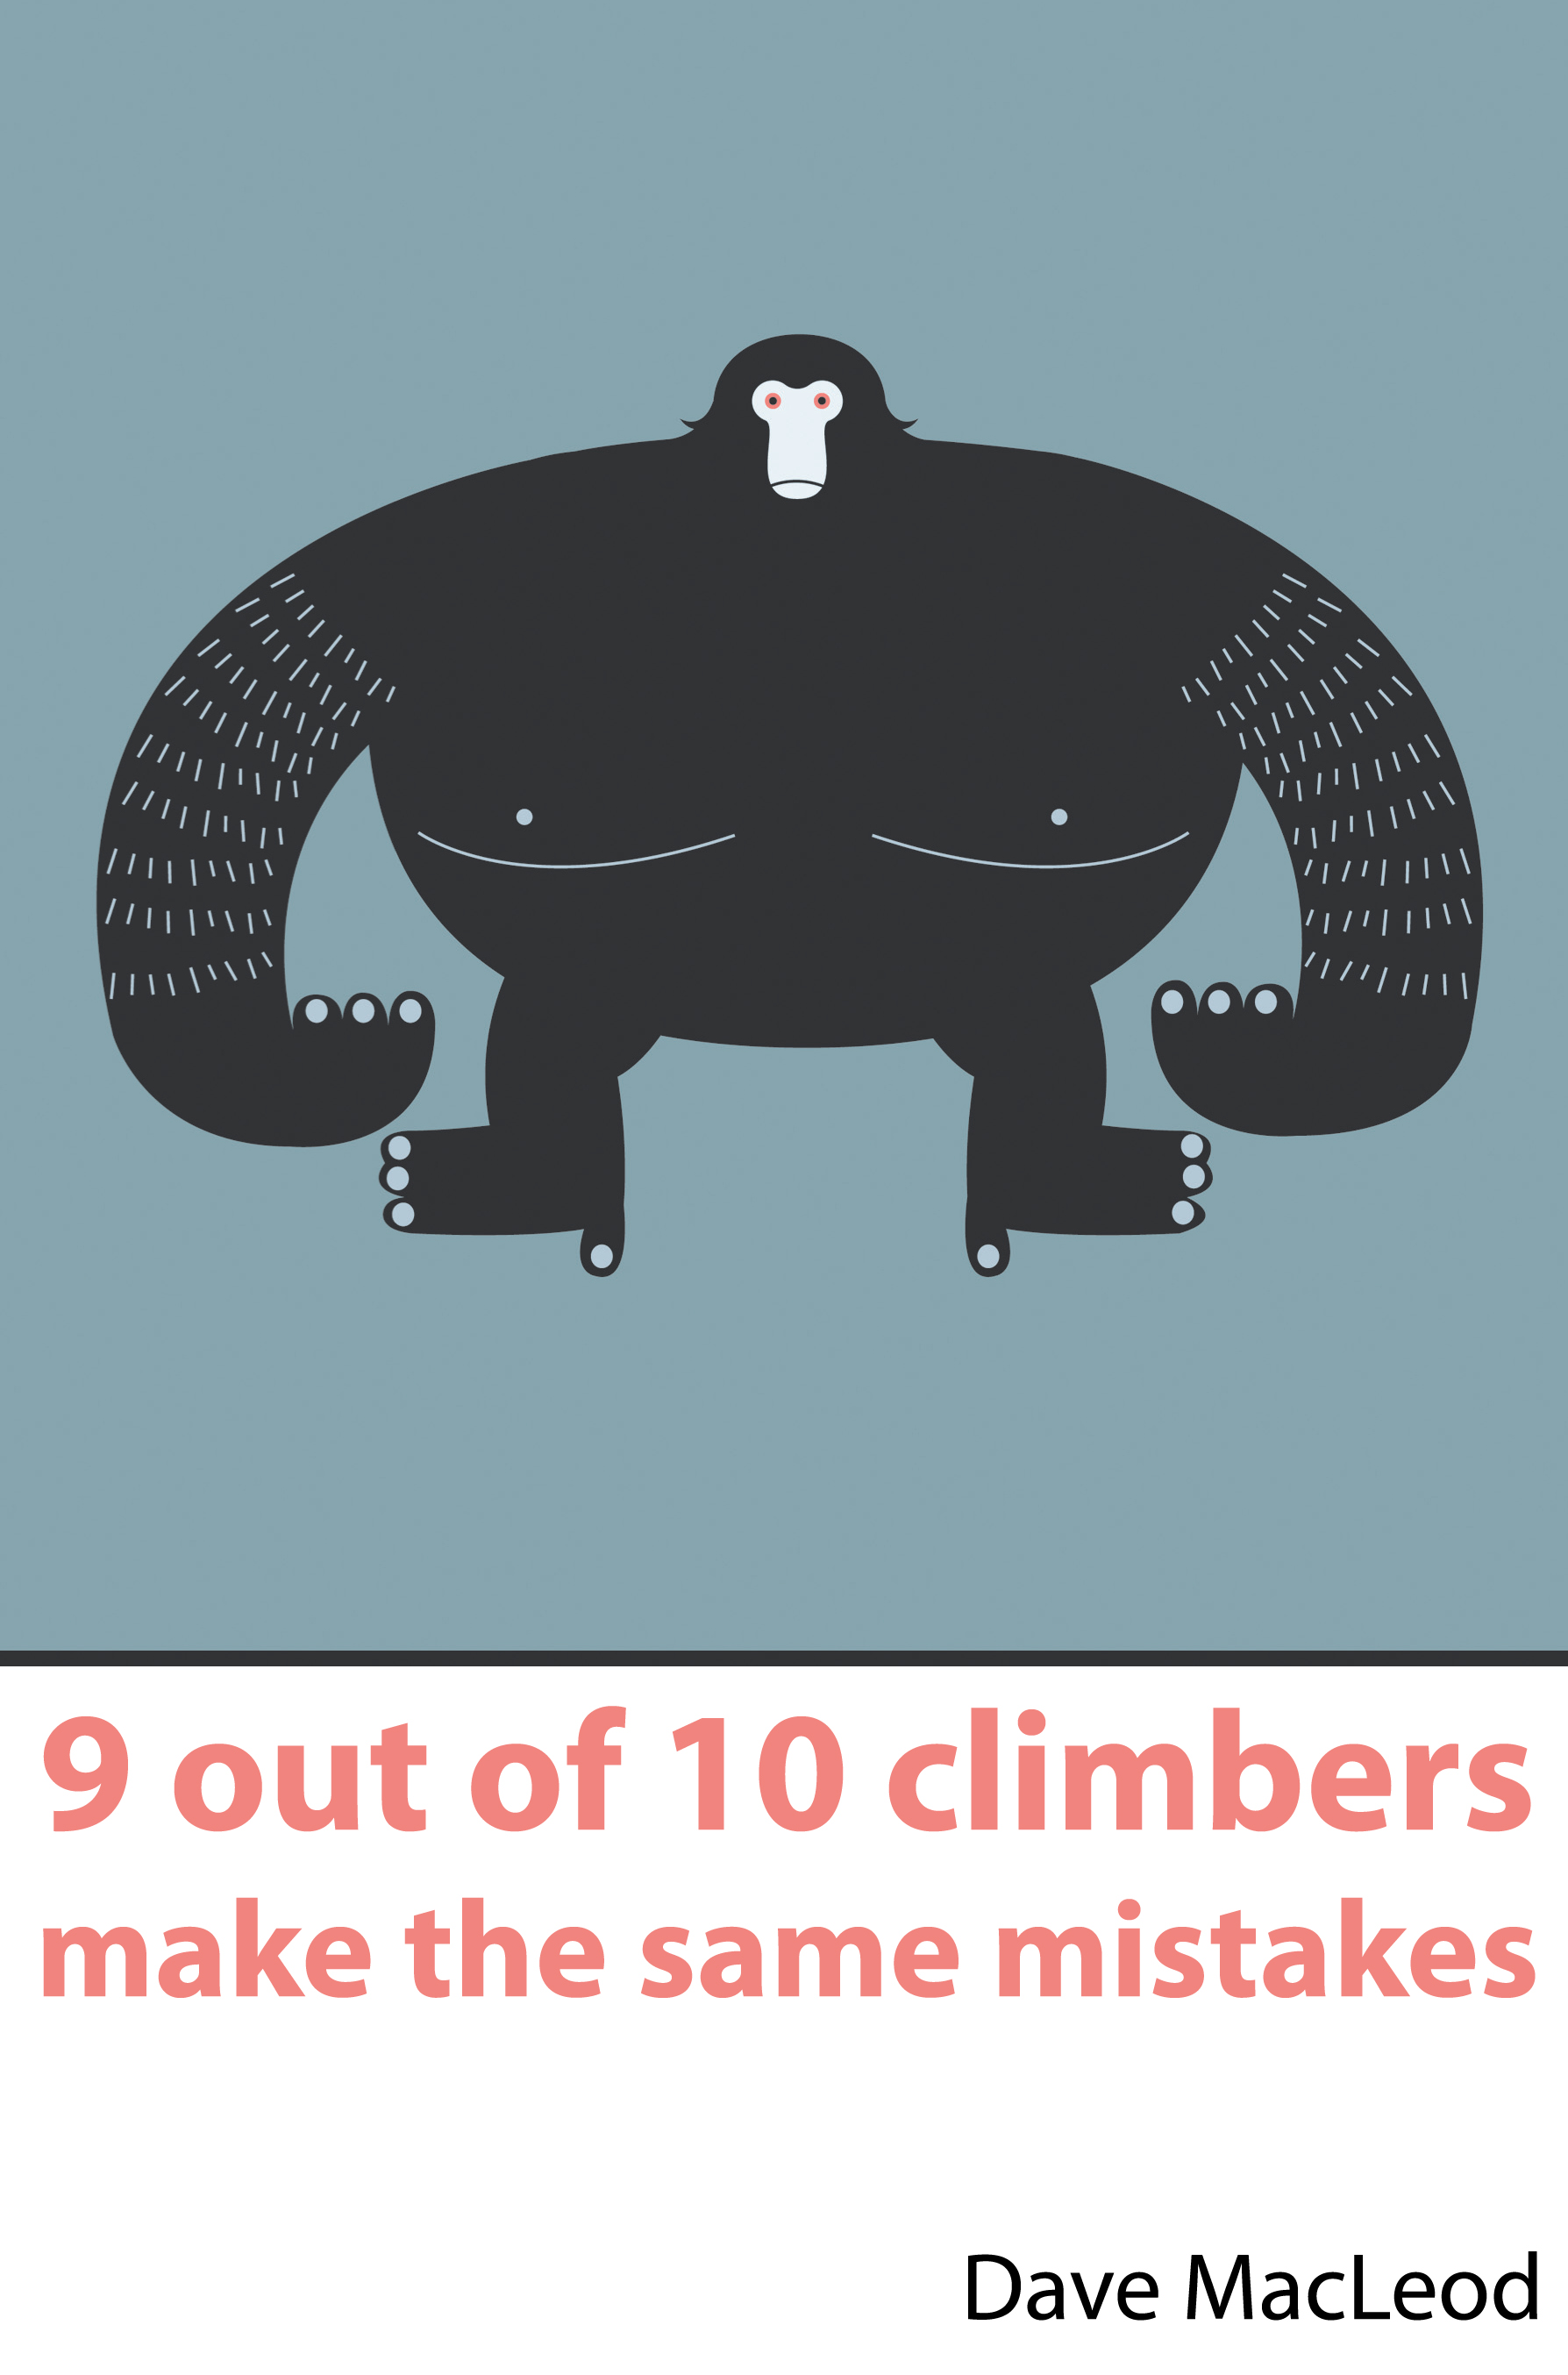 9 out of 10 CLimbers make the same mistakes - Navigation through the maze of advice for the self-coached climber.